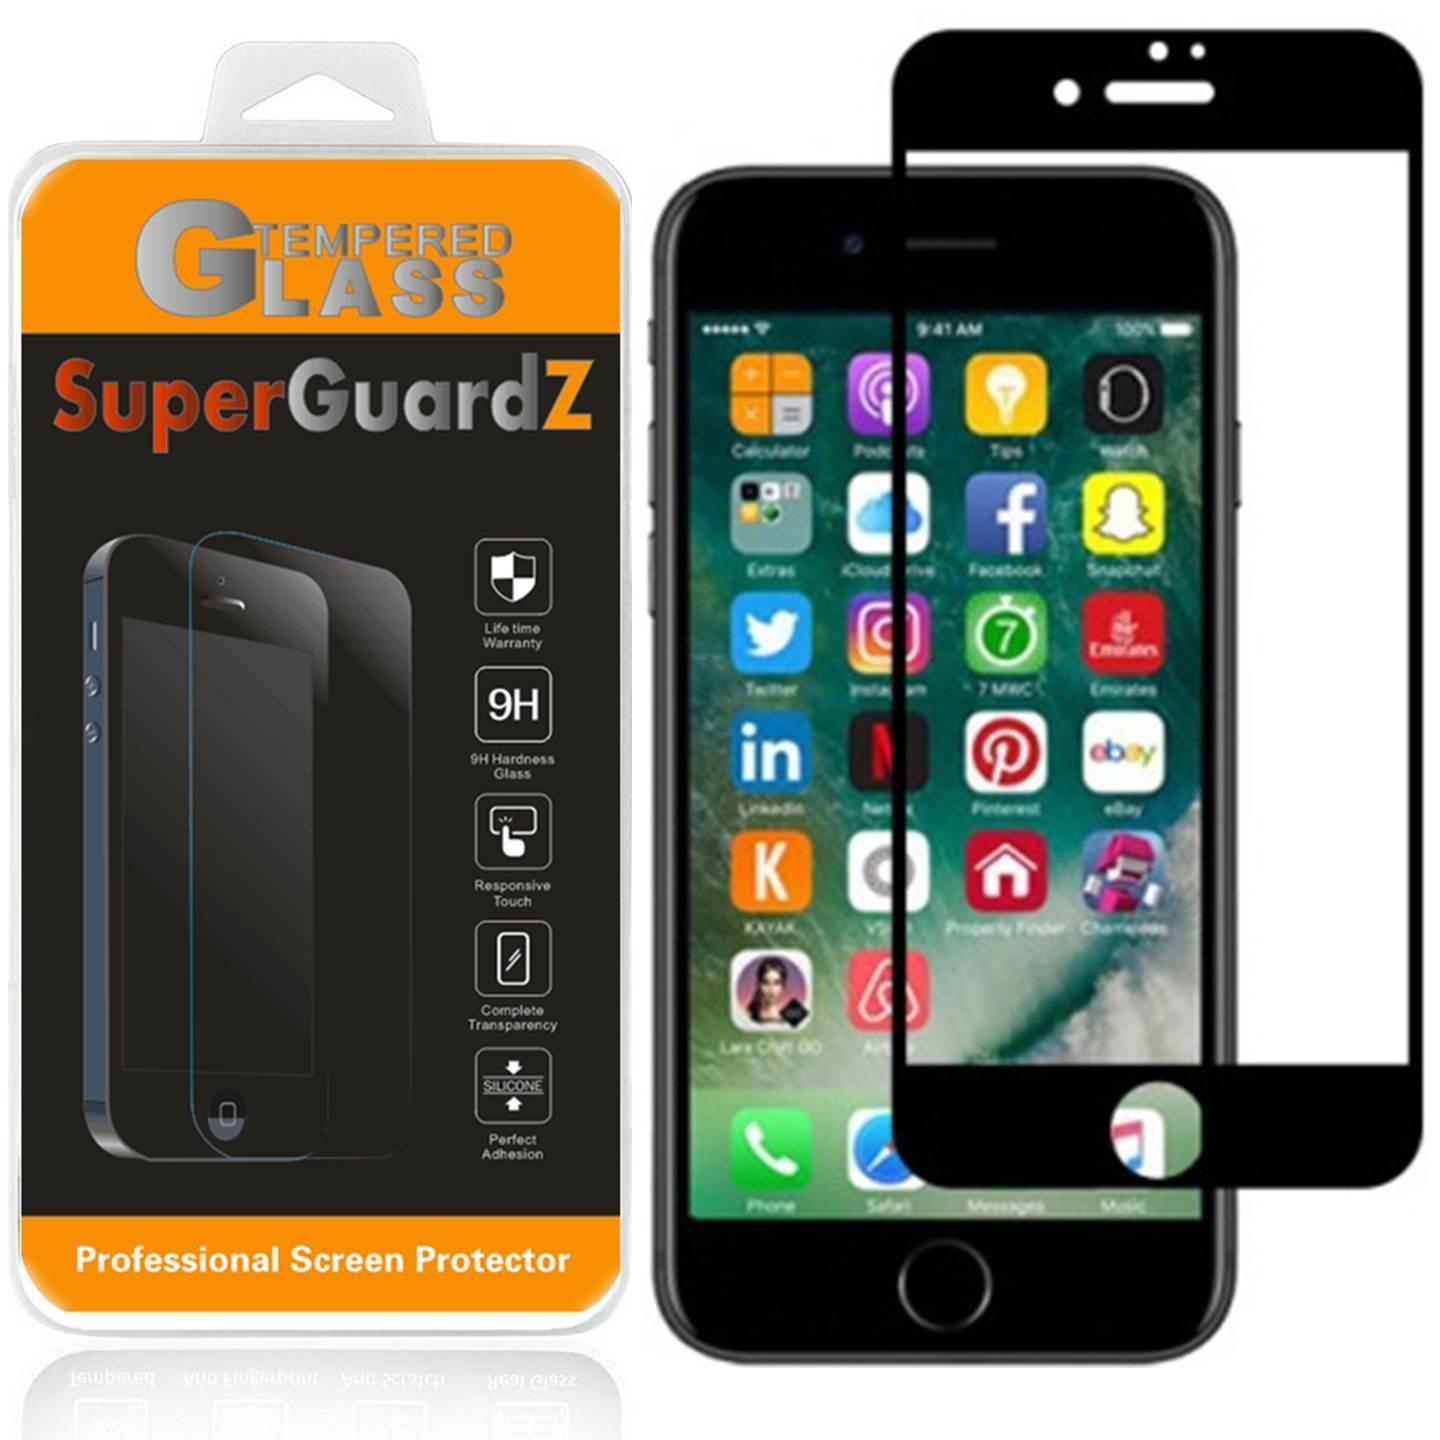 [2-Pack] For iPhone 6S Plus / 6 Plus - SuperGuardZ Tempered Glass Screen Protector, Full Screen Coverage, 9H, Anti-Scratch, Anti-Bubble, Anti-Fingerprint [Black]